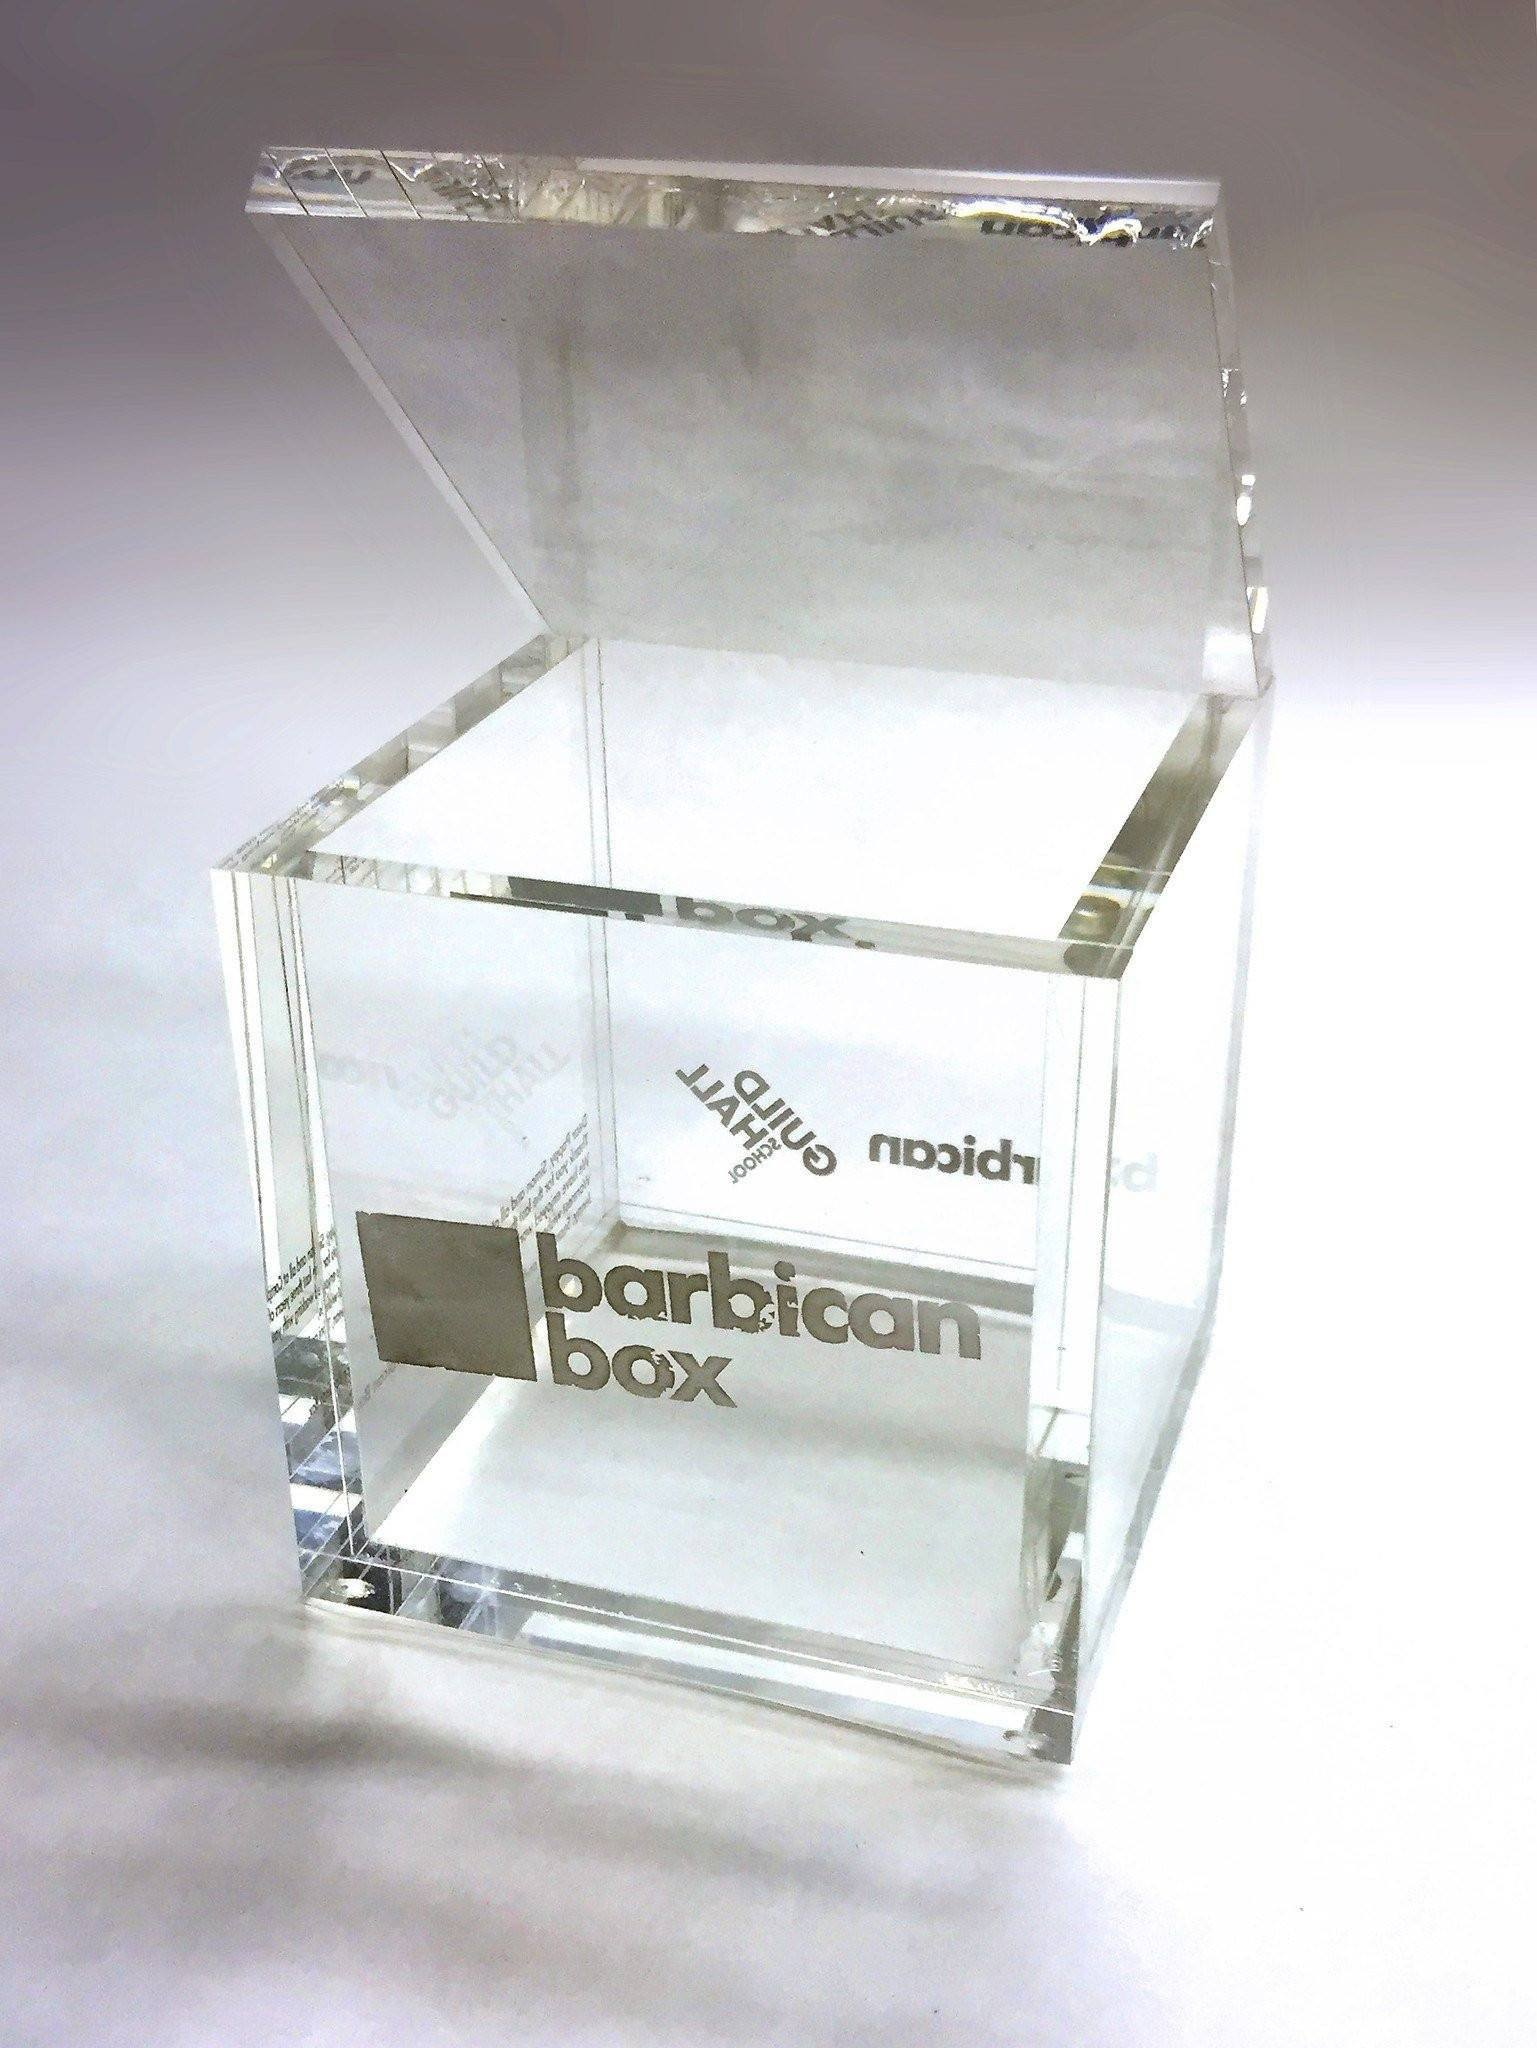 Barbican Box Bespoke Acrylic Awards Creative Awards